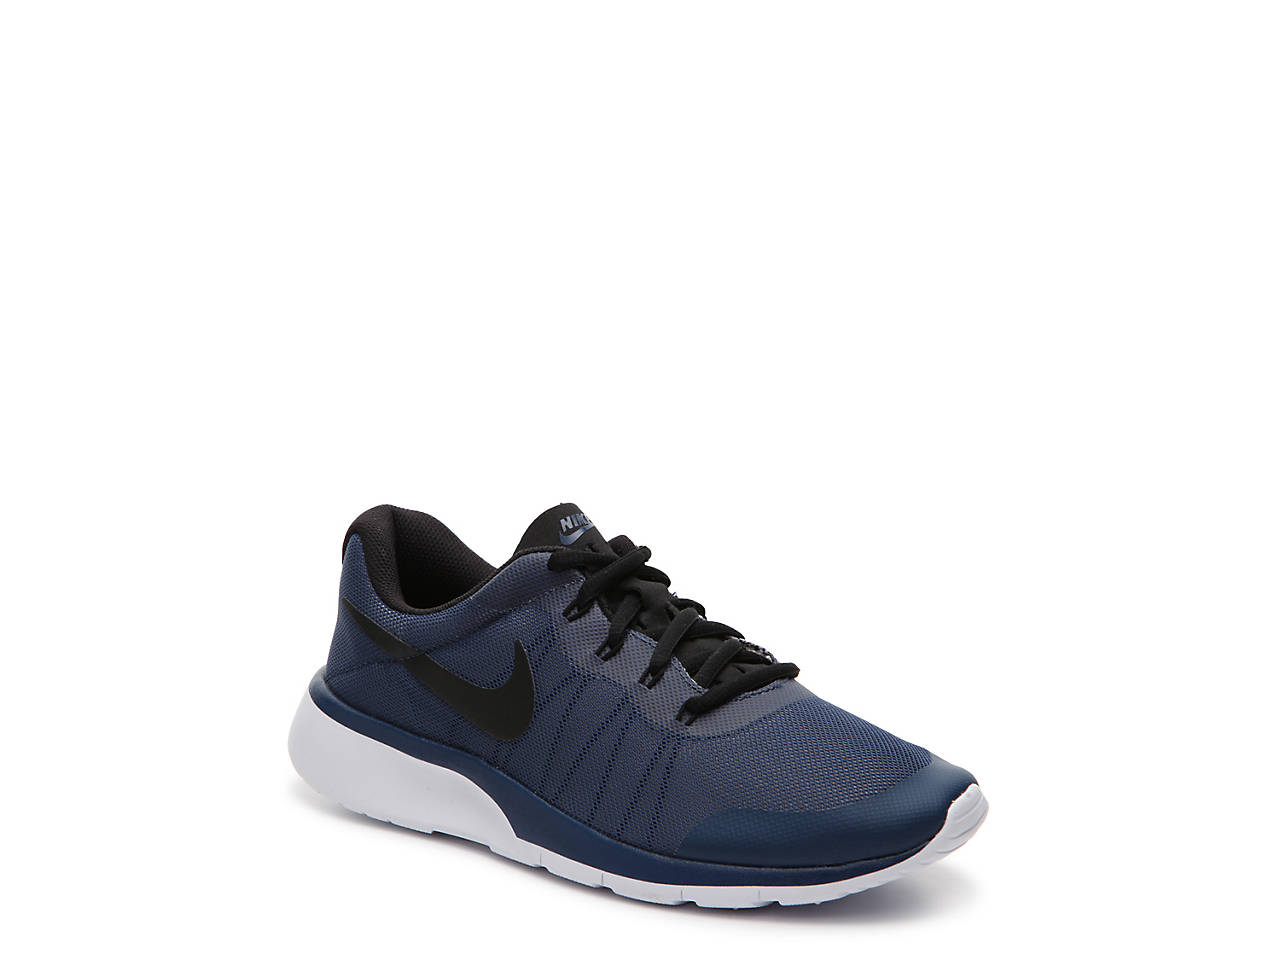 info for 5f63c 6e52d Nike. Tanjun Racer Youth Sneaker